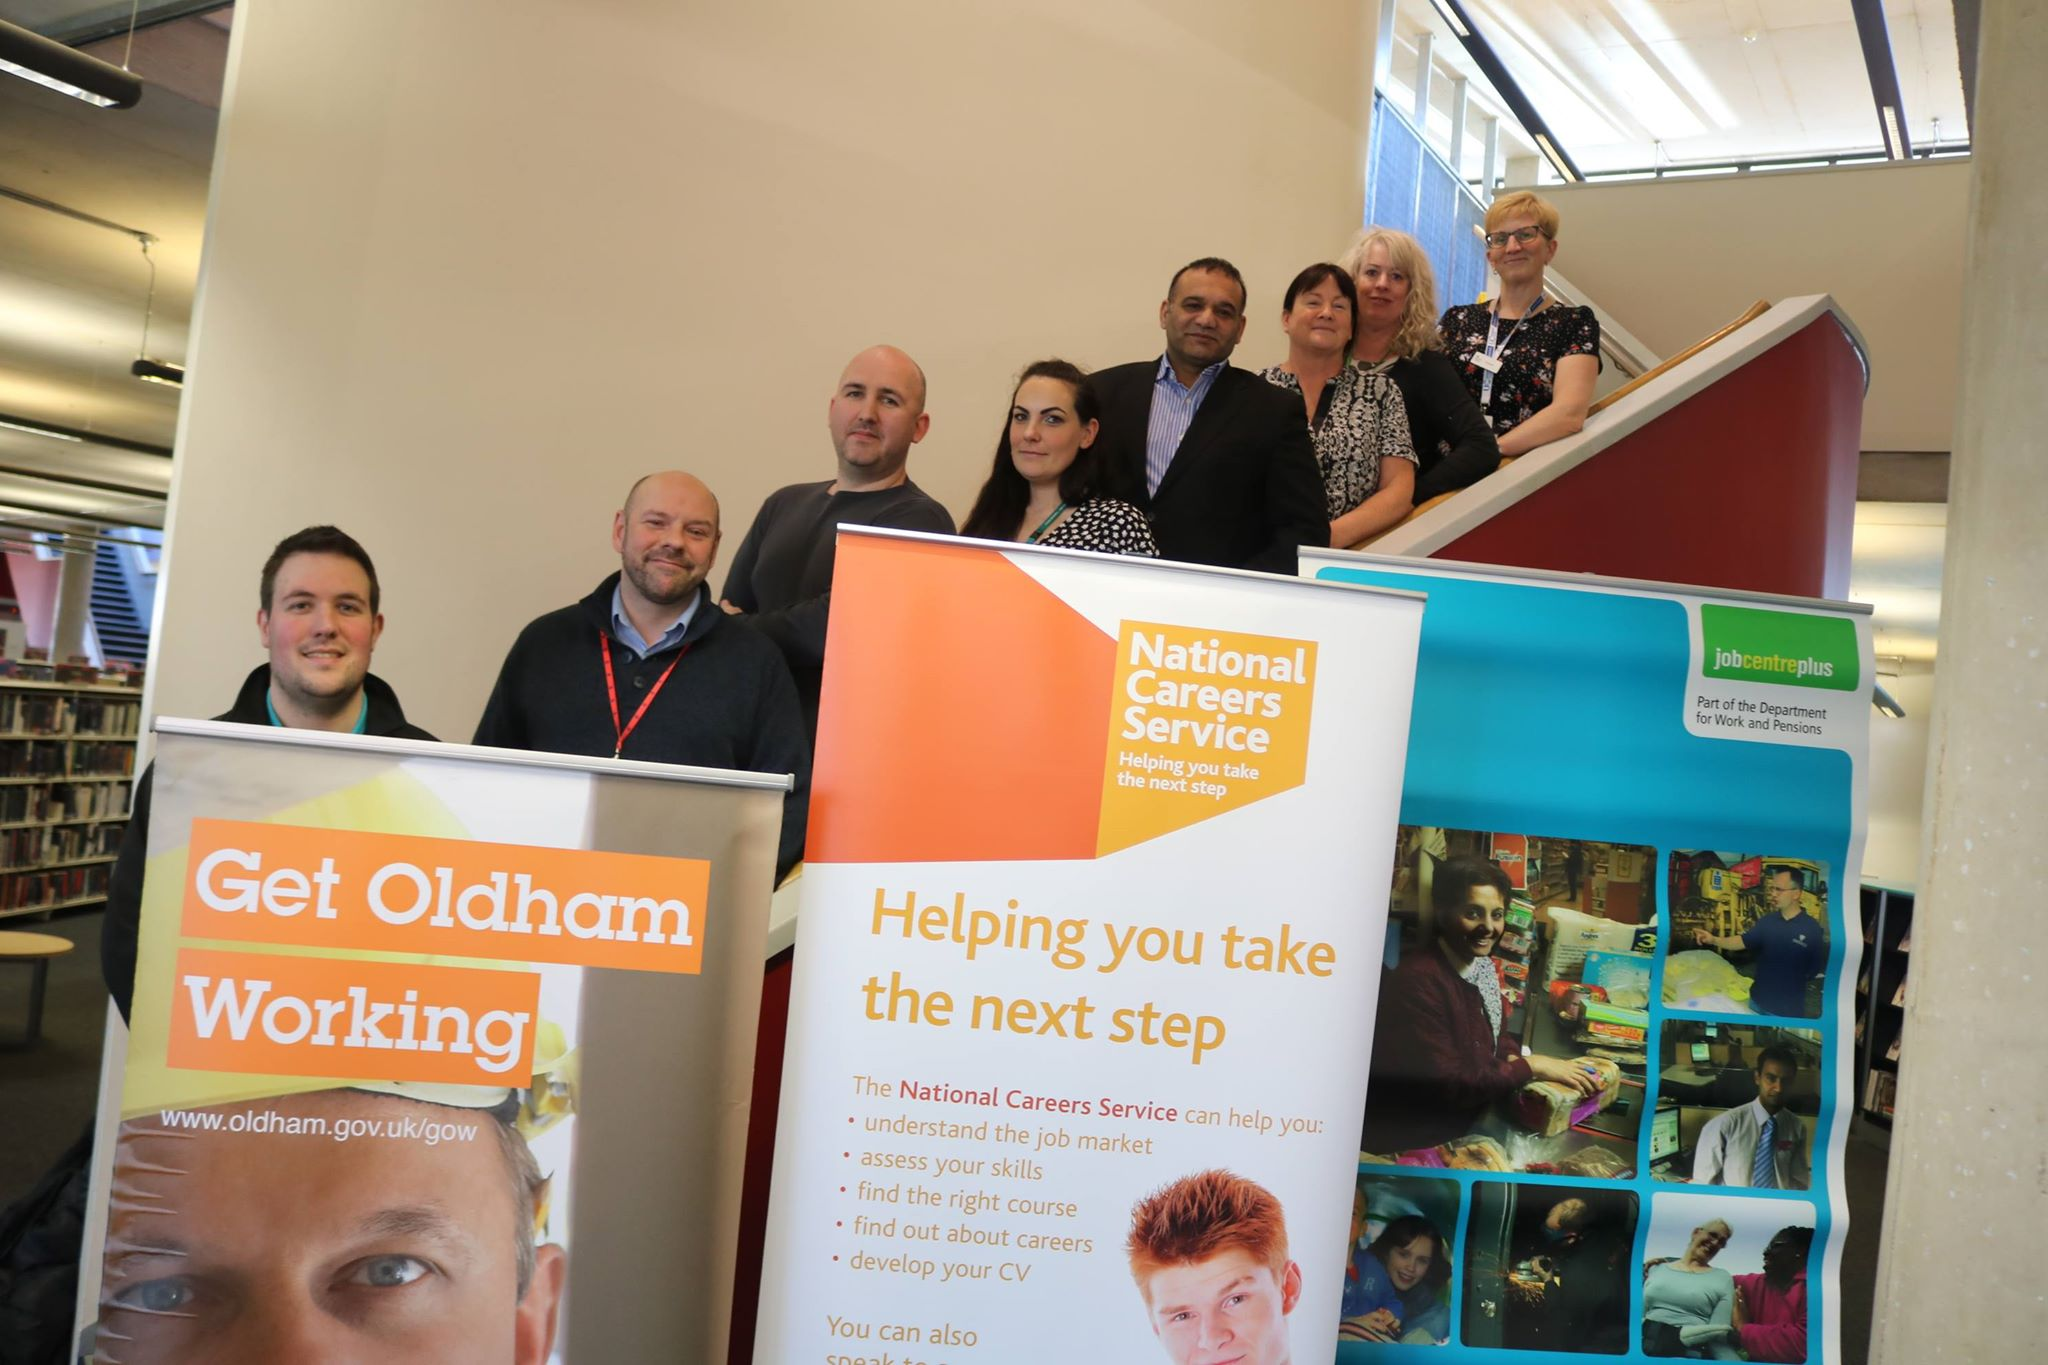 Take your next step at Get OIdham Working's Career and Apprenticeship Fair